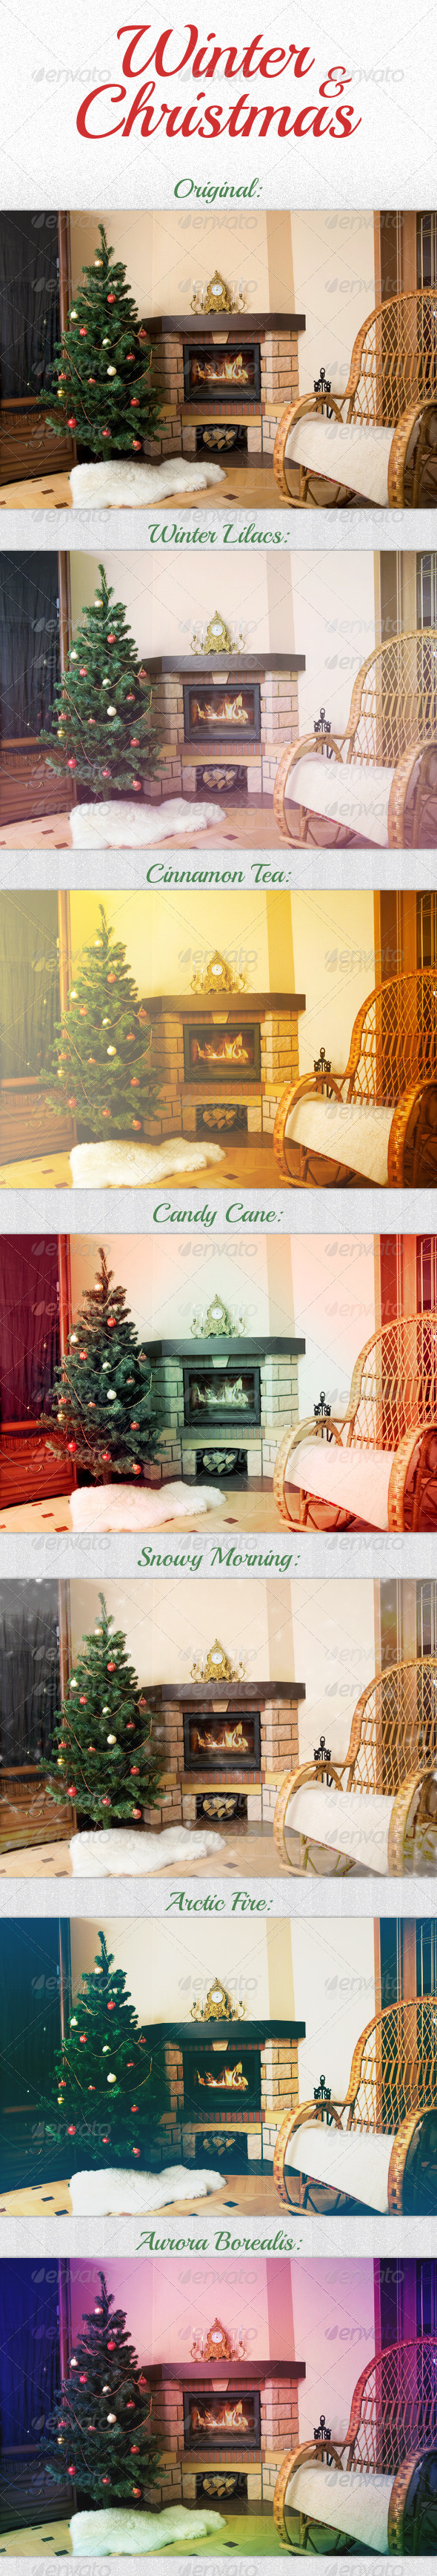 GraphicRiver Winter & Christmas Actions 3559030